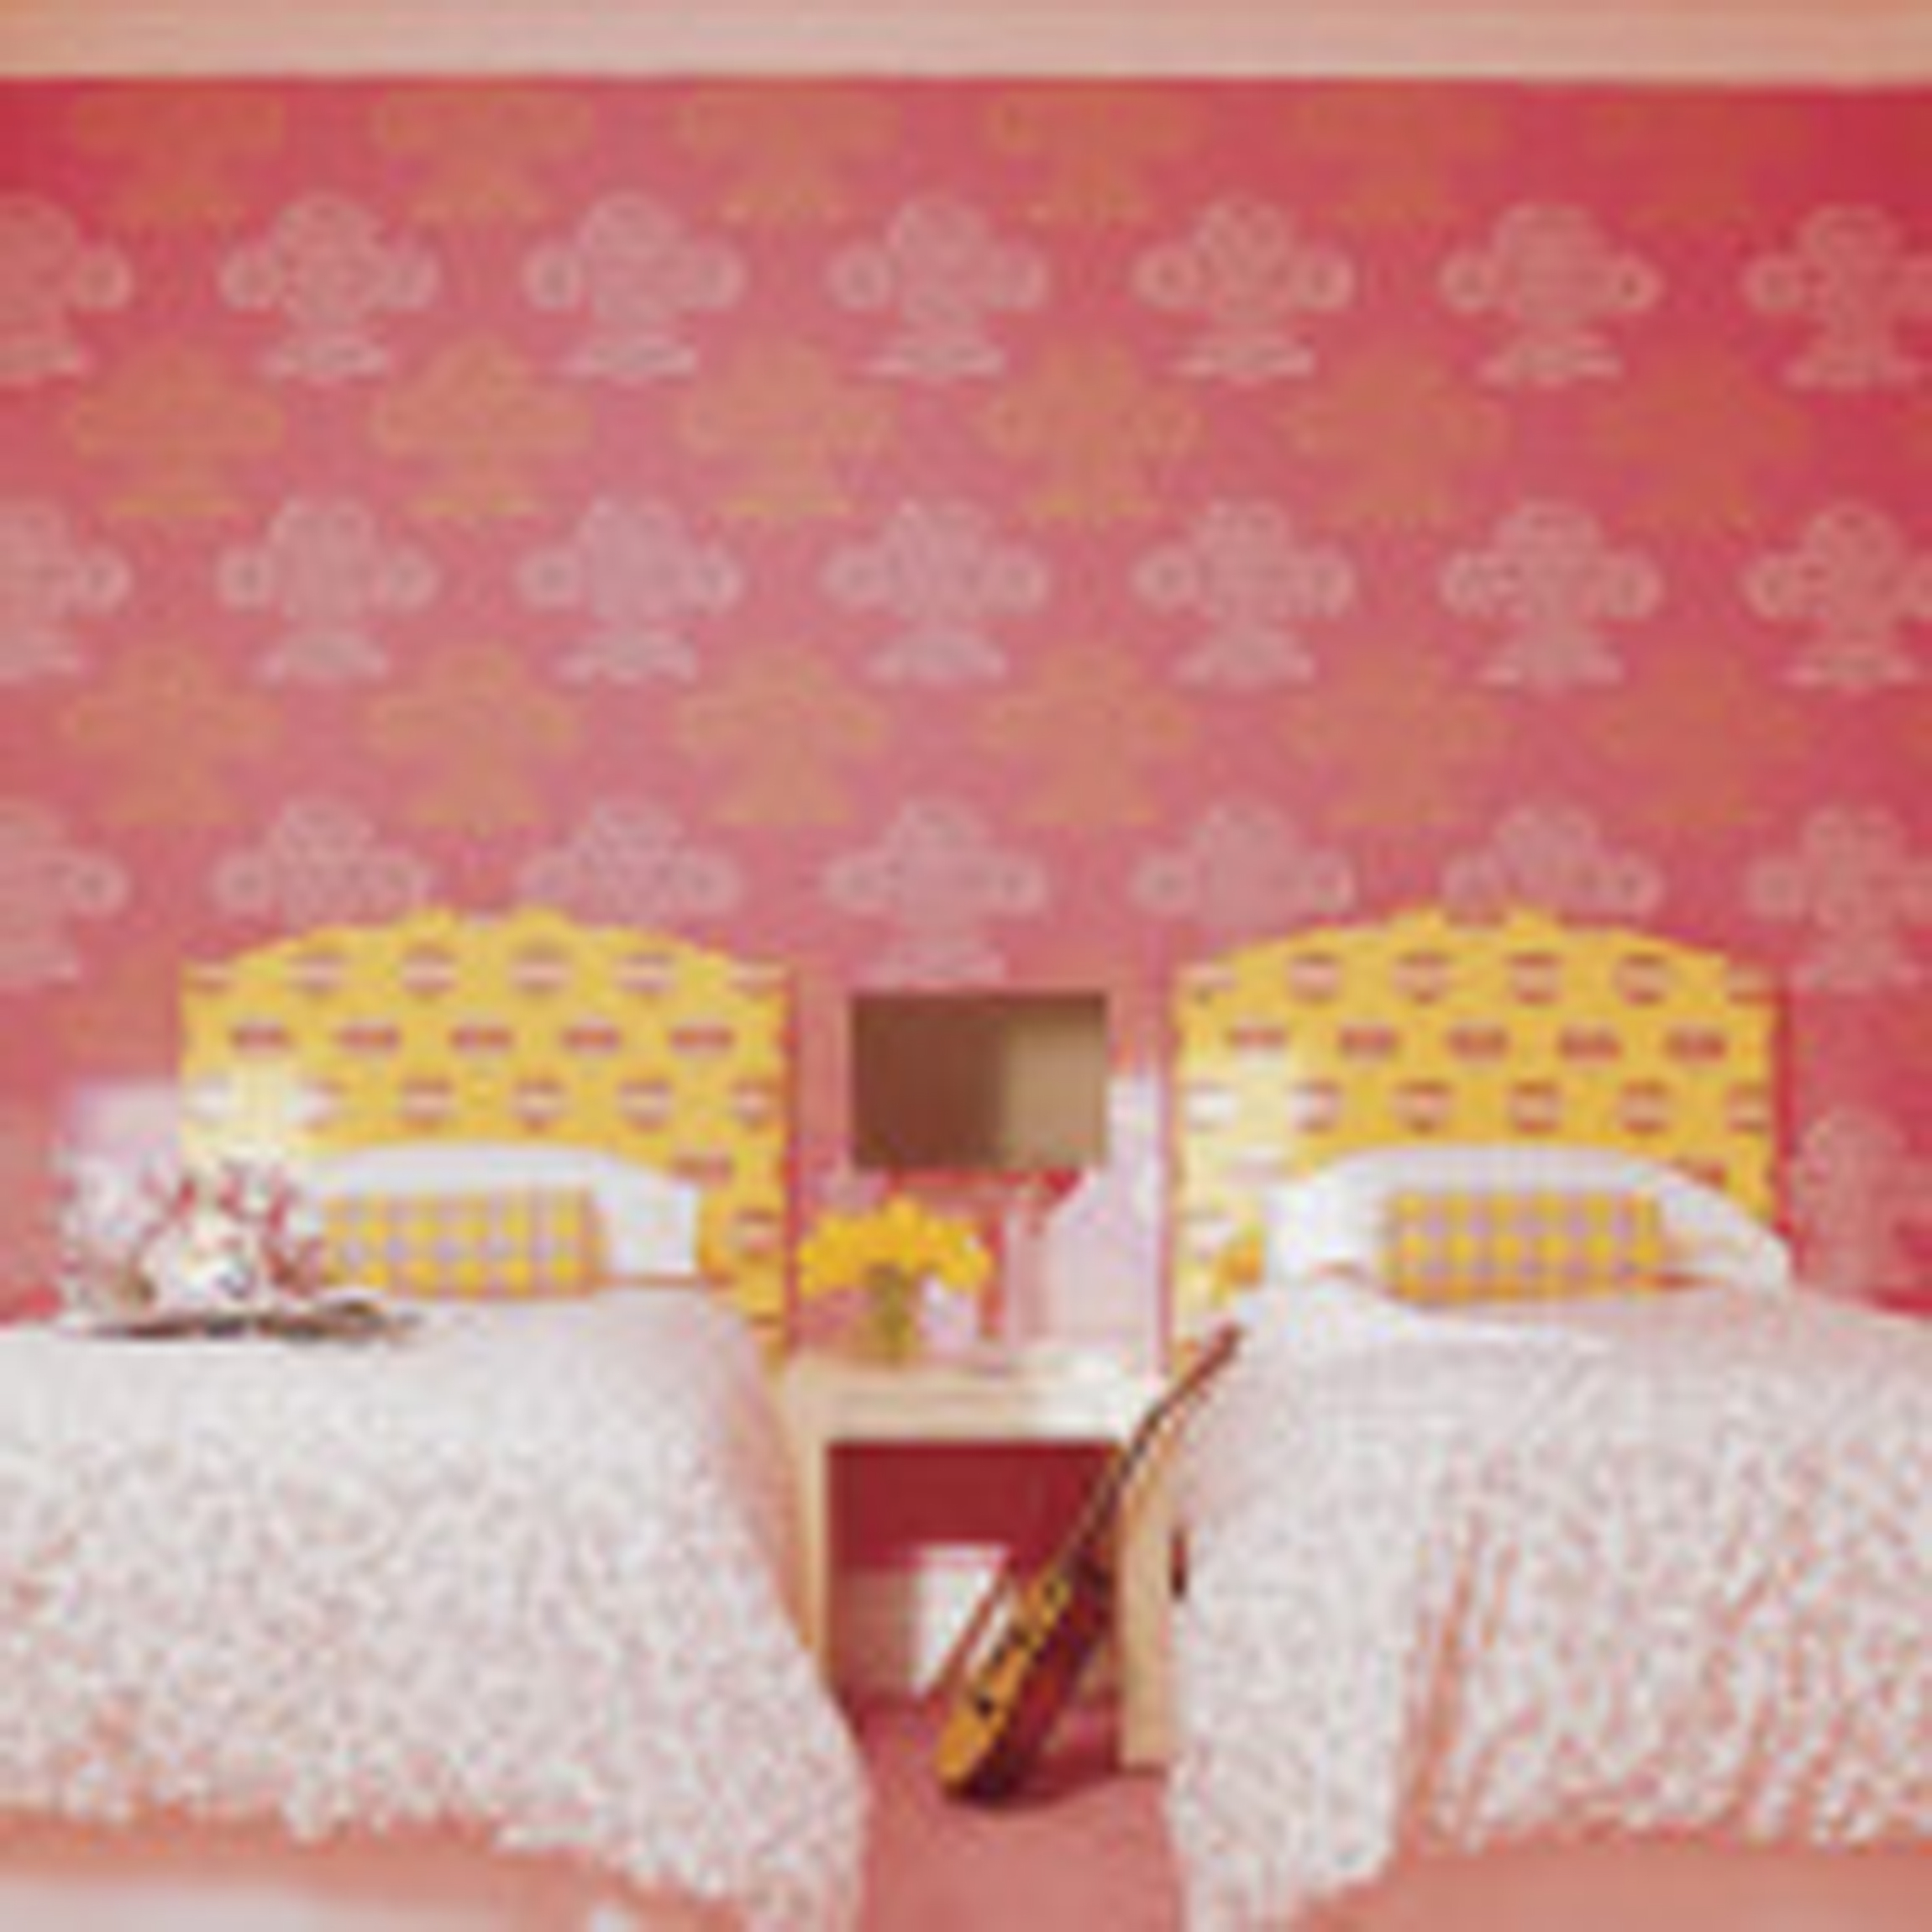 Kids Bedroom Design With Sweet Twin Bed Kids And Beautiful Pink Motif Wallpaper Fancy Fun Furnish And Decoration For Kid Bedroom Design Ideas Kid Bedroom Furniture Kid Beds (Image 11 of 28)